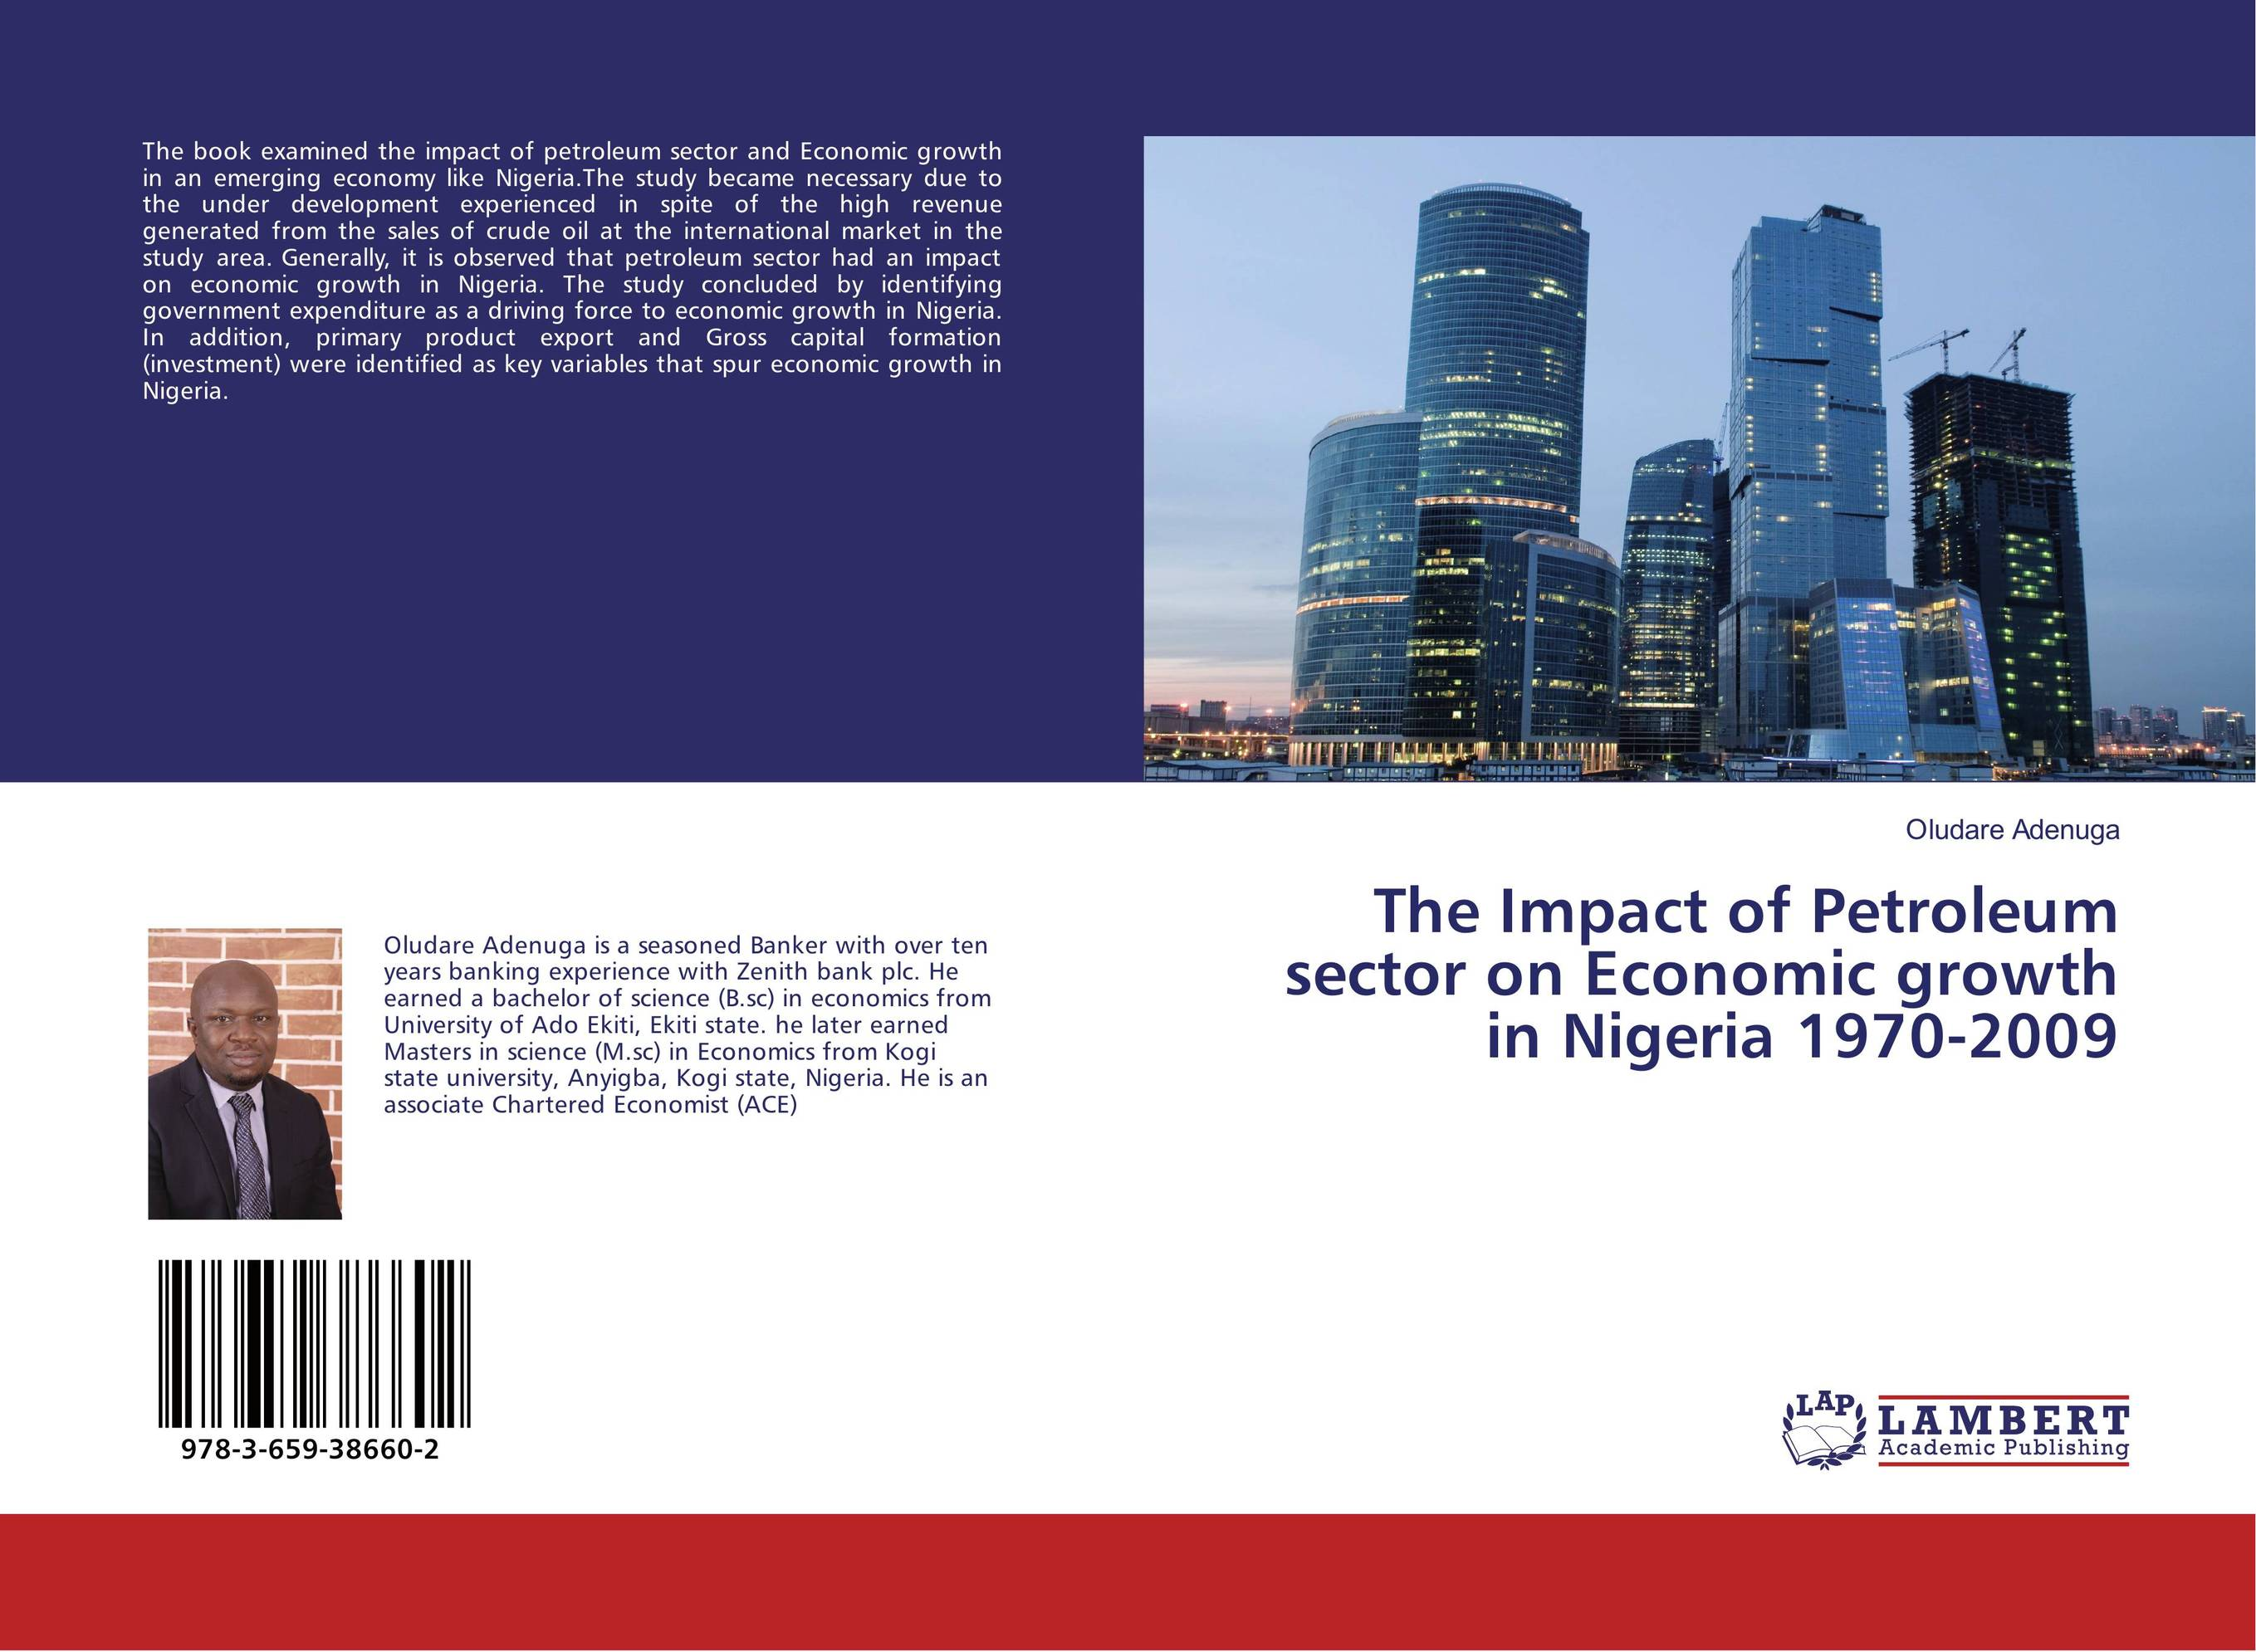 The Impact of Petroleum sector on Economic growth in Nigeria 1970-2009 economic growth in nigeria